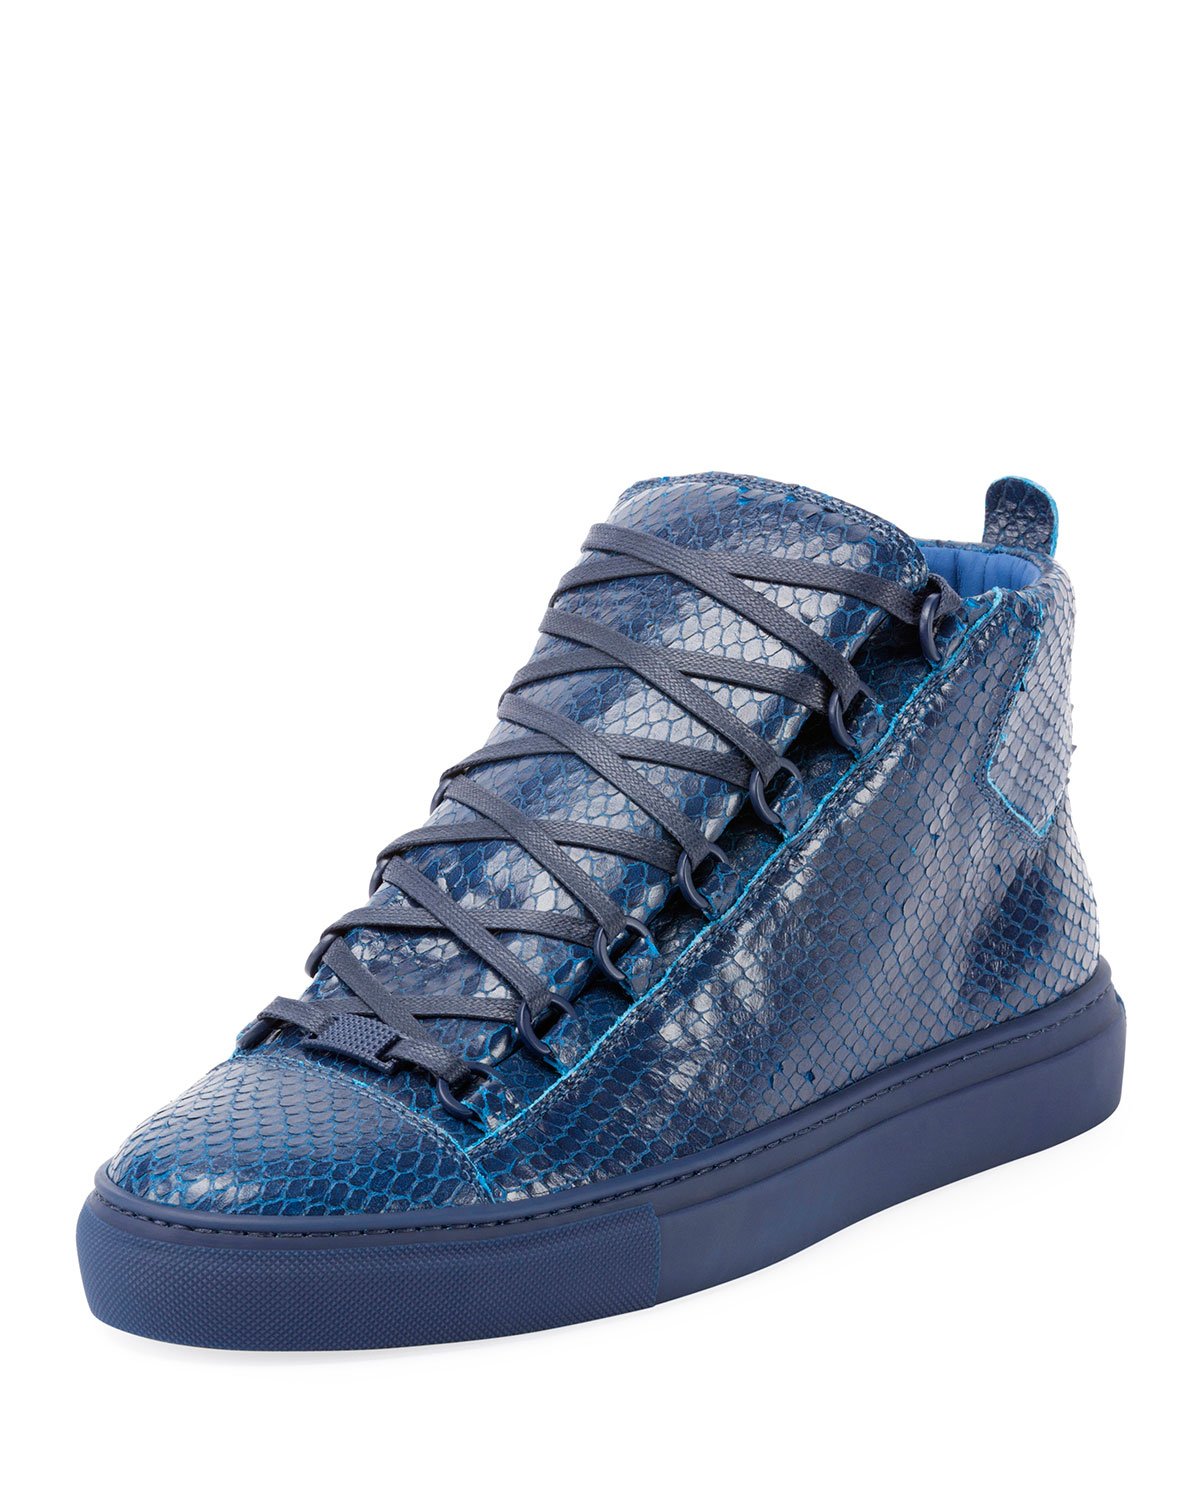 a0c833af5a2d Balenciaga Men s Arena Faux-Python Leather High-Top Sneaker